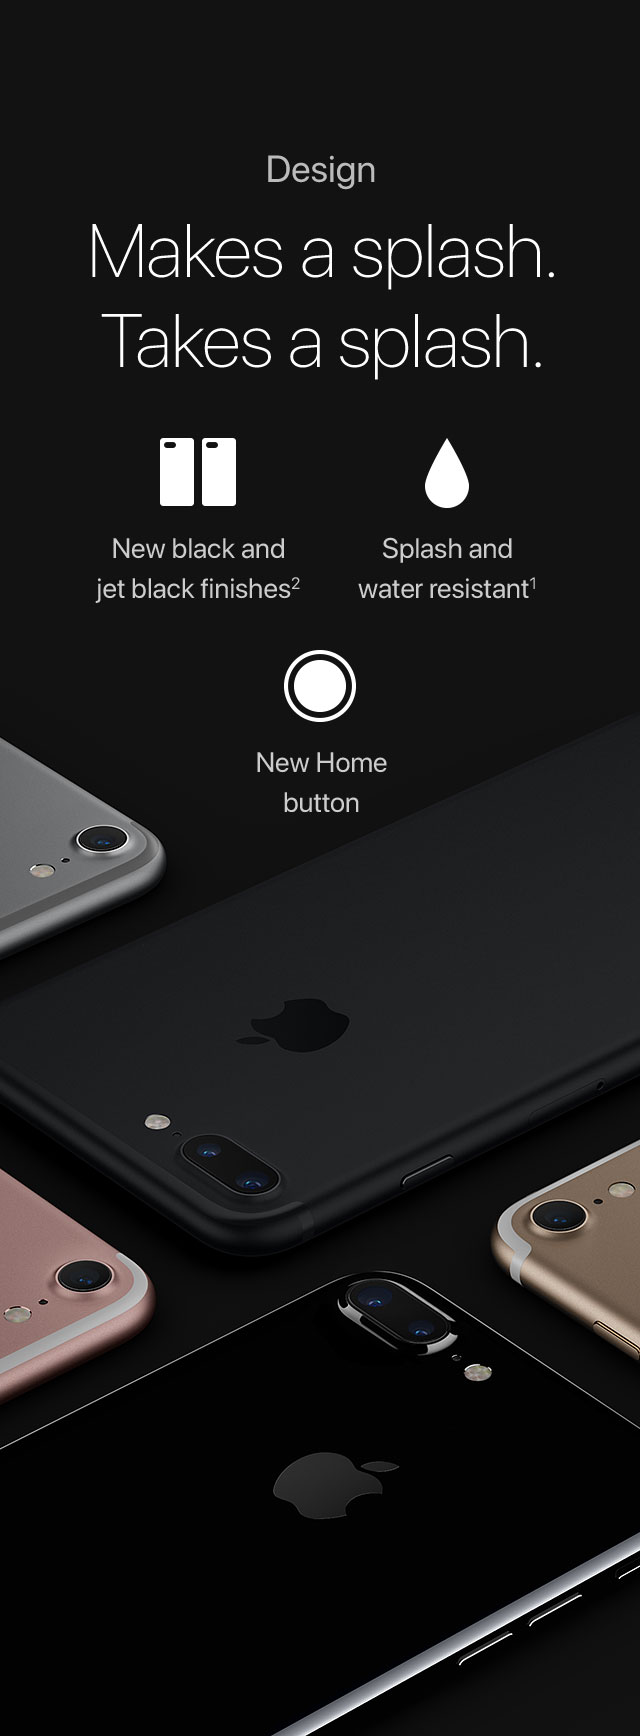 Design Makes a splash. Takes a splash. New black and jet black finishes2/Splash and water resistant1/New Home button